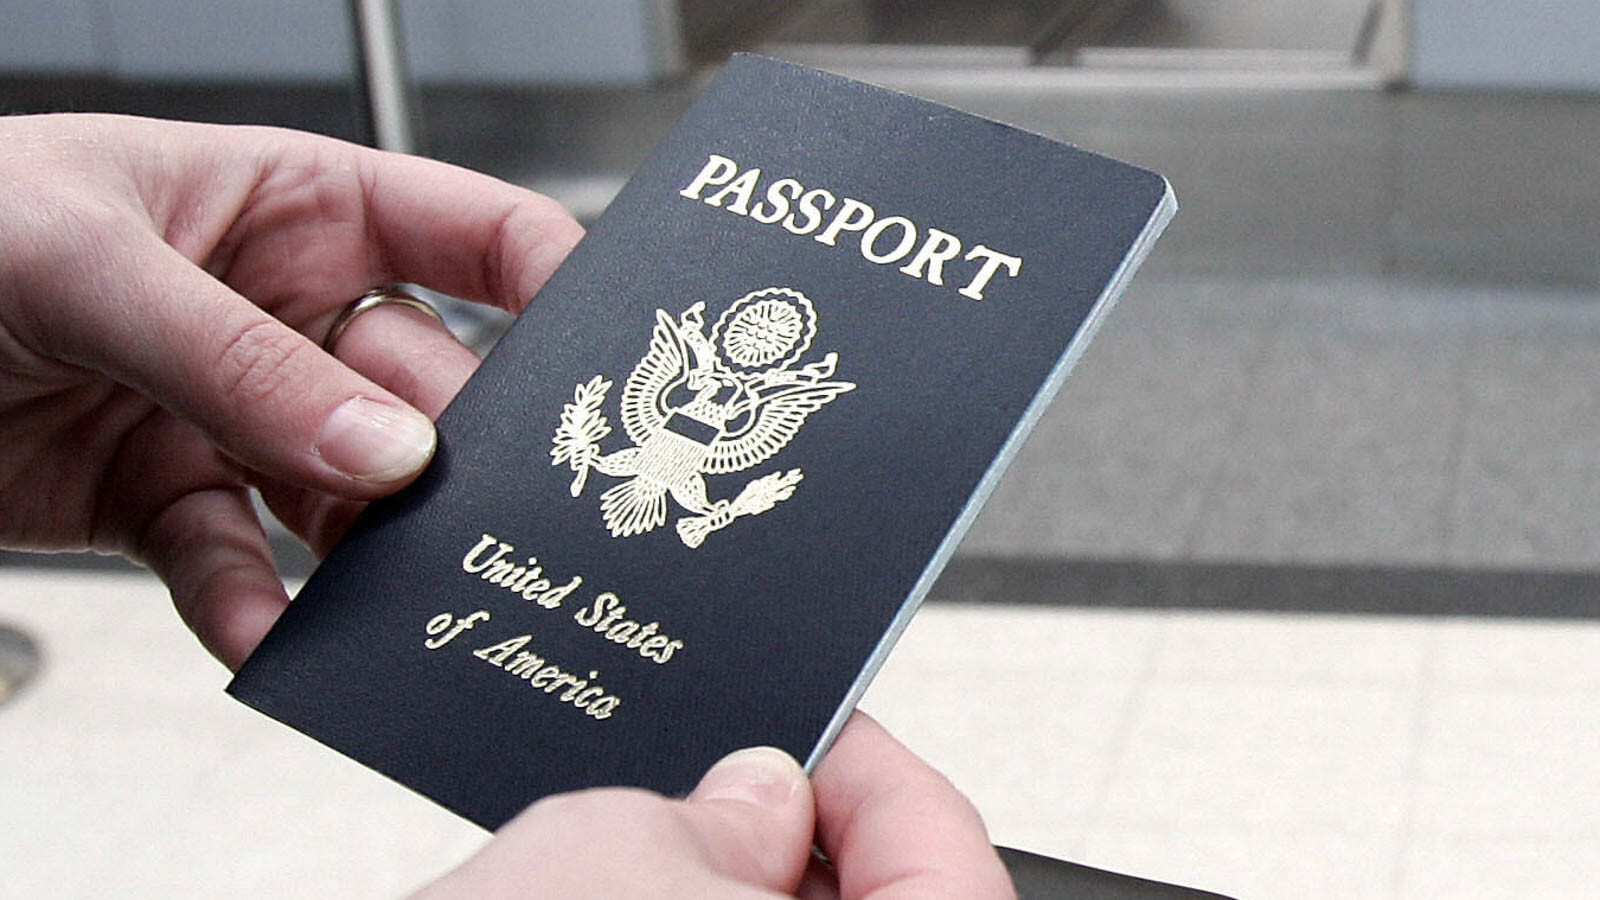 Americans face months-long wait for passports as State Department deals with massive backlog